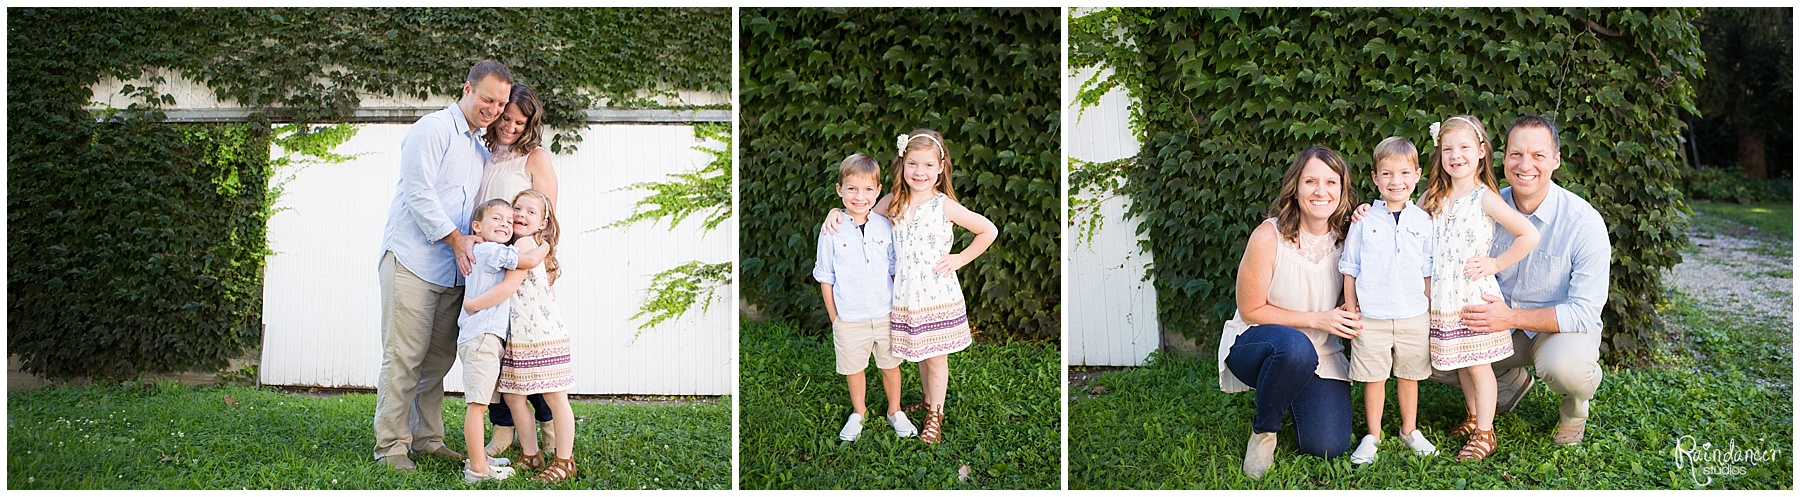 Indianapolis family photographer, Indianapolis family photography, Indy family photographer, Indy family photography, Indy children photographer, Indianapolis children photographer, Indianapolis lifestyle photographer, Zionsville Family Photographer, Zionsville family photography